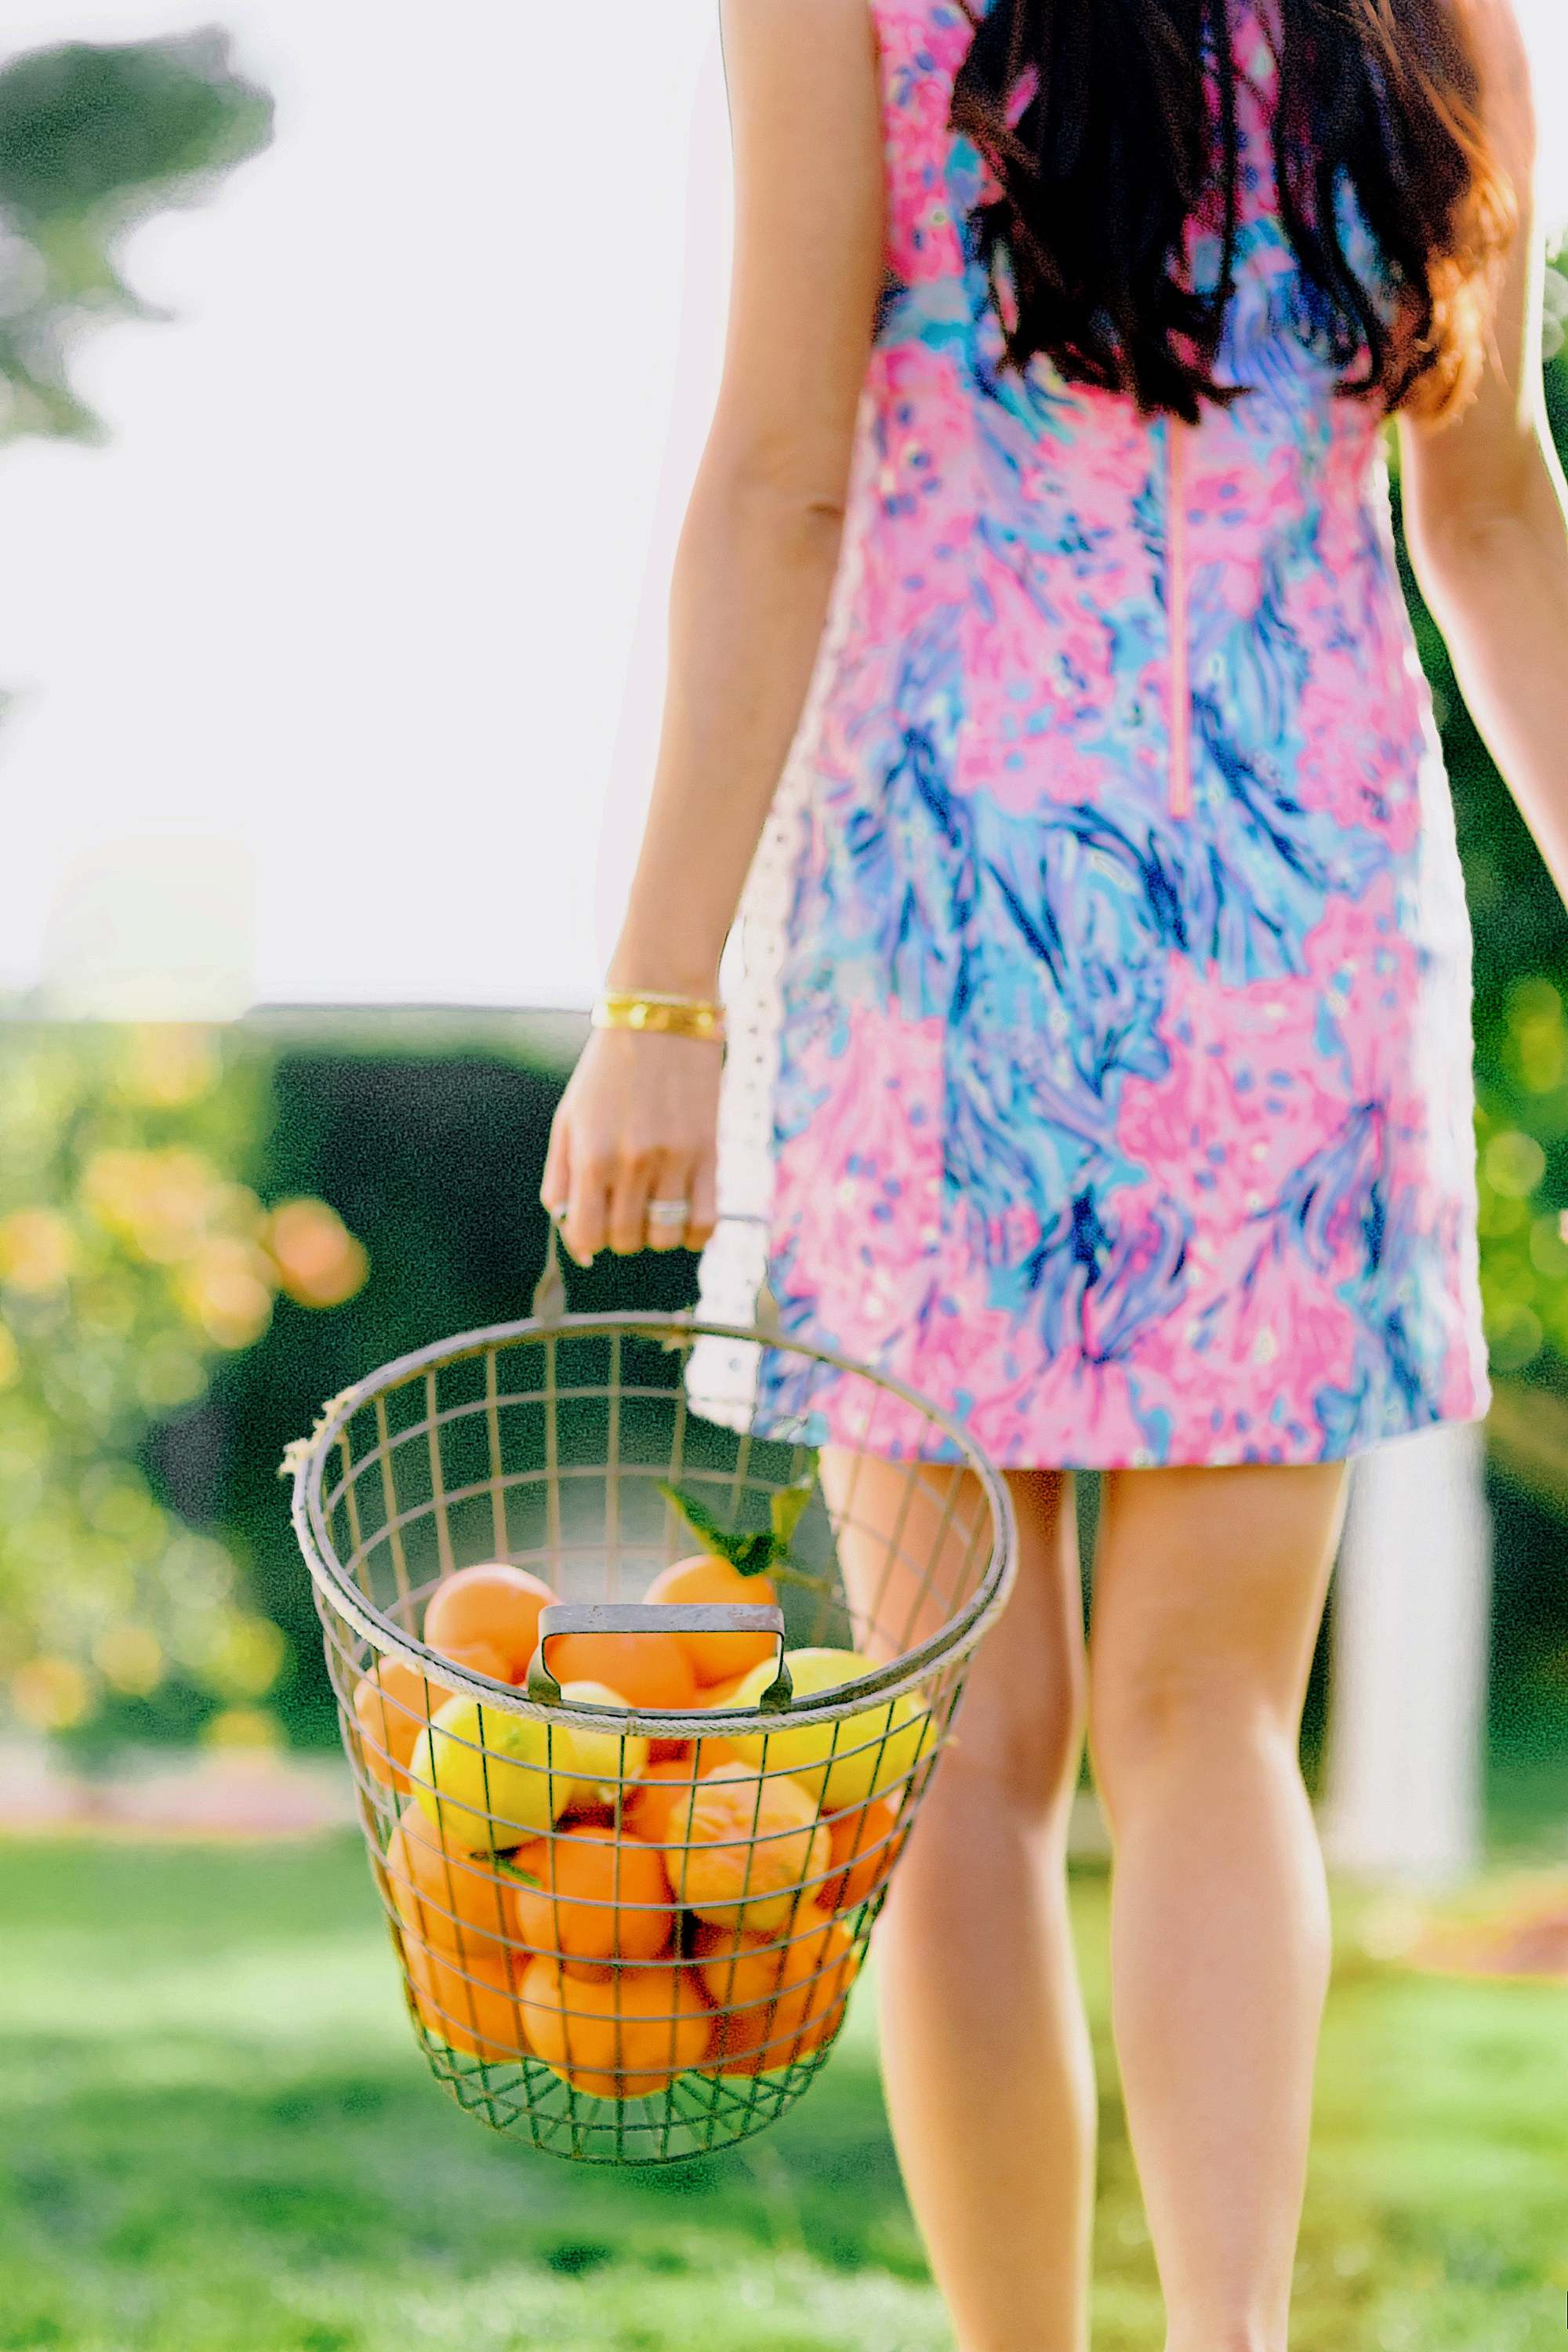 citrus gathering wearing a Lilly Pulitzer dress